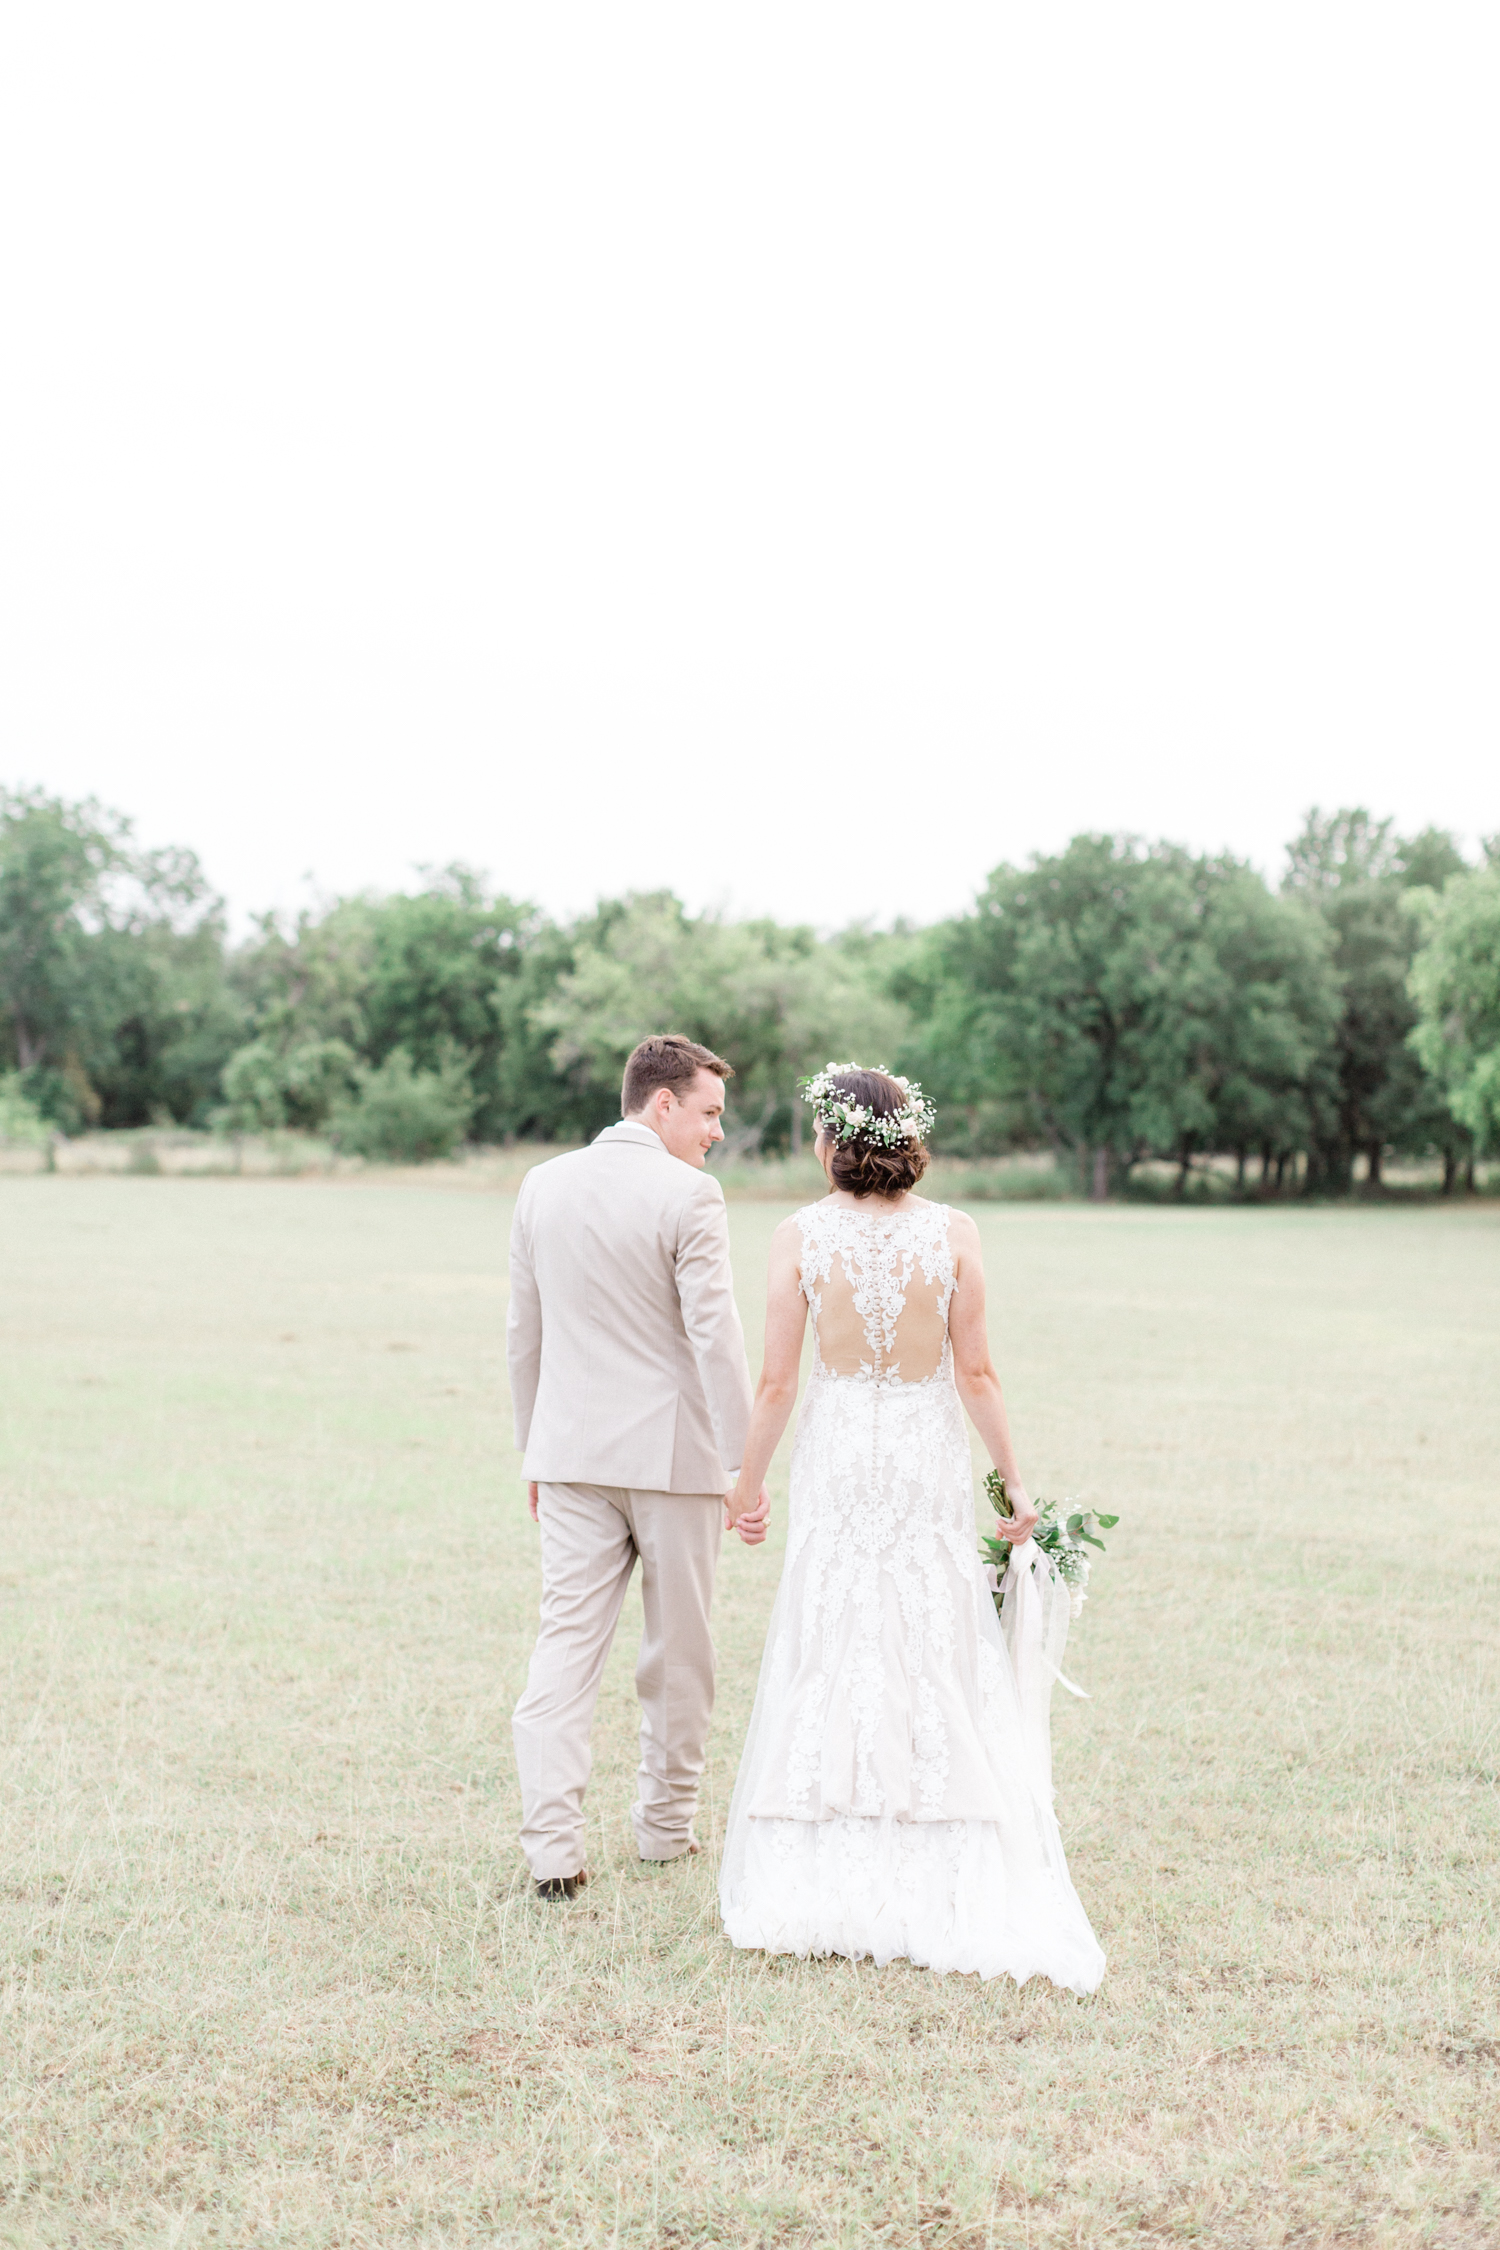 San Antonio Texas Wedding Engagement Photographer Photography Hill Country Texas Old Town Red Bud Hall Summer Blush Ivory Tan Rustic Classic Elegant Wedding San Antonio Austin Texas photographer 63